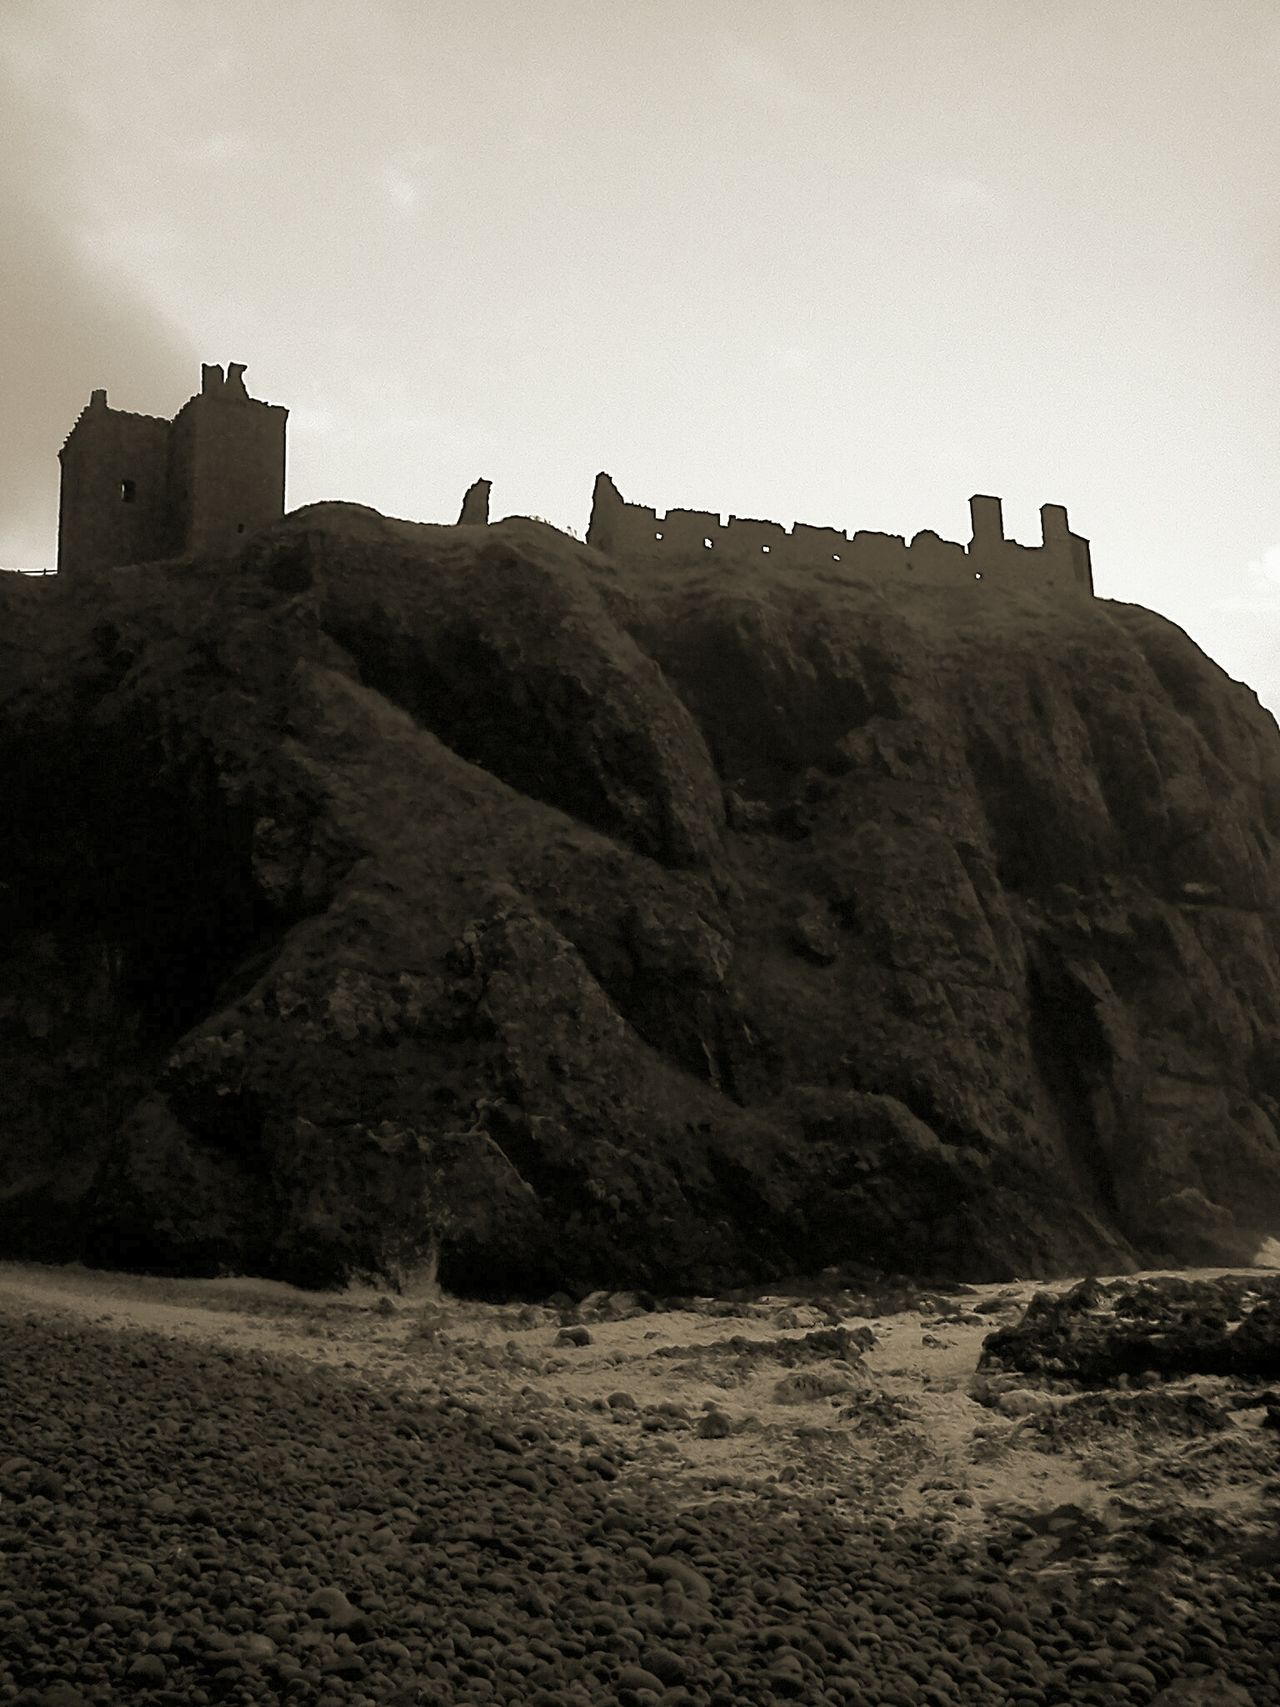 Scotland Eye4photography  Scotlandlover Cliff Ruins Of A Castle EyeEm Gallery Check This Out Sepia Sepia_collection Sepia Photography Taking Photos Photography Eyeem Scotland  From My Point Of View Scottish Castle Cliffs Scottish Beaches Scottish Beauty EyeEm Travel Photography Travel Photography Nature EyeEm Nature Photography Beach Photography Traveling Nature_collection